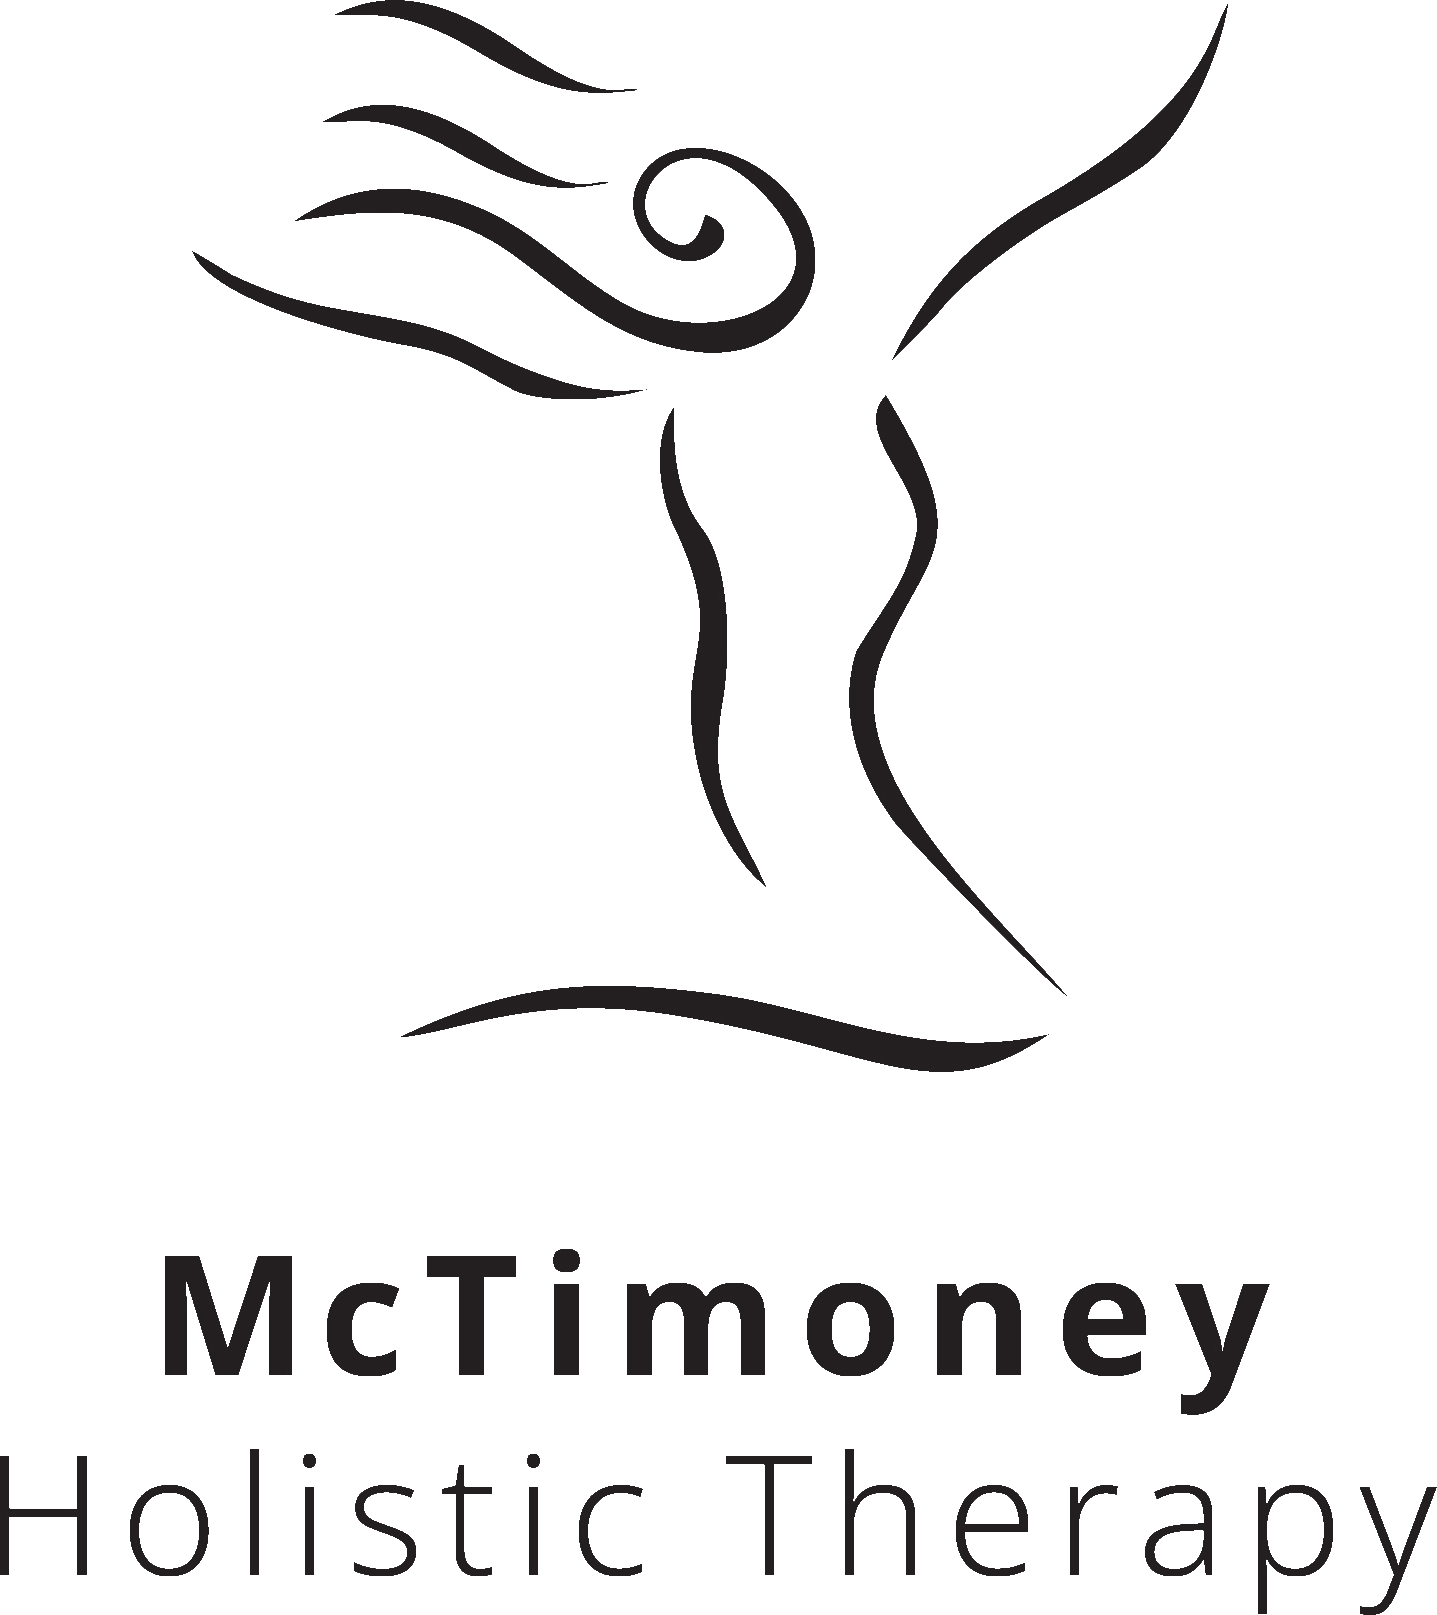 Mctimoney holistic therapy, pain relief, lower back stretches, chiropractor whakatane, chiropractor Tauranga